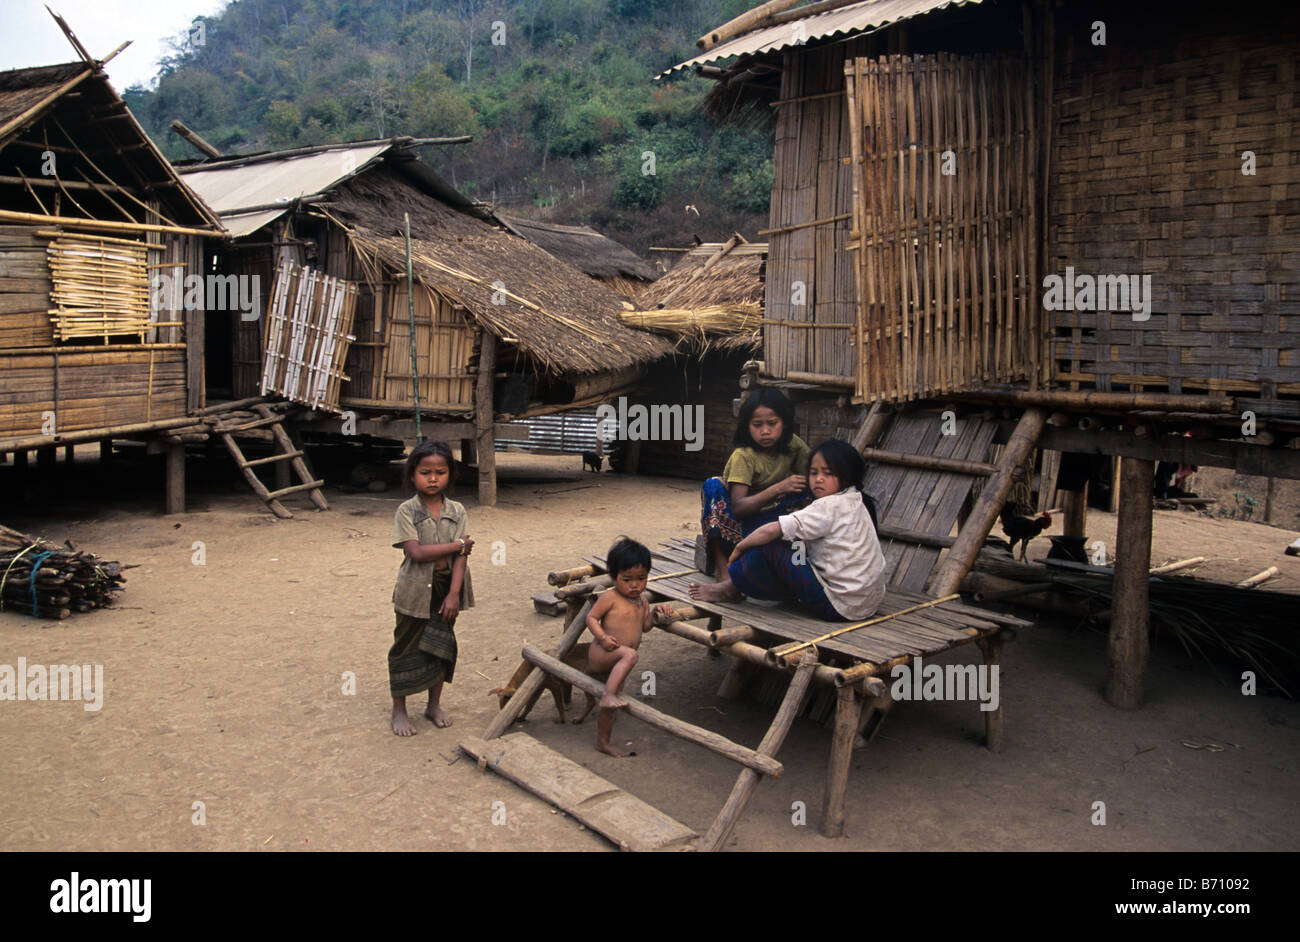 Hmong Children or Family Outside their Traditional Bamboo & Grass Houses in the Upland Lao Village of Khamu, - Stock Image